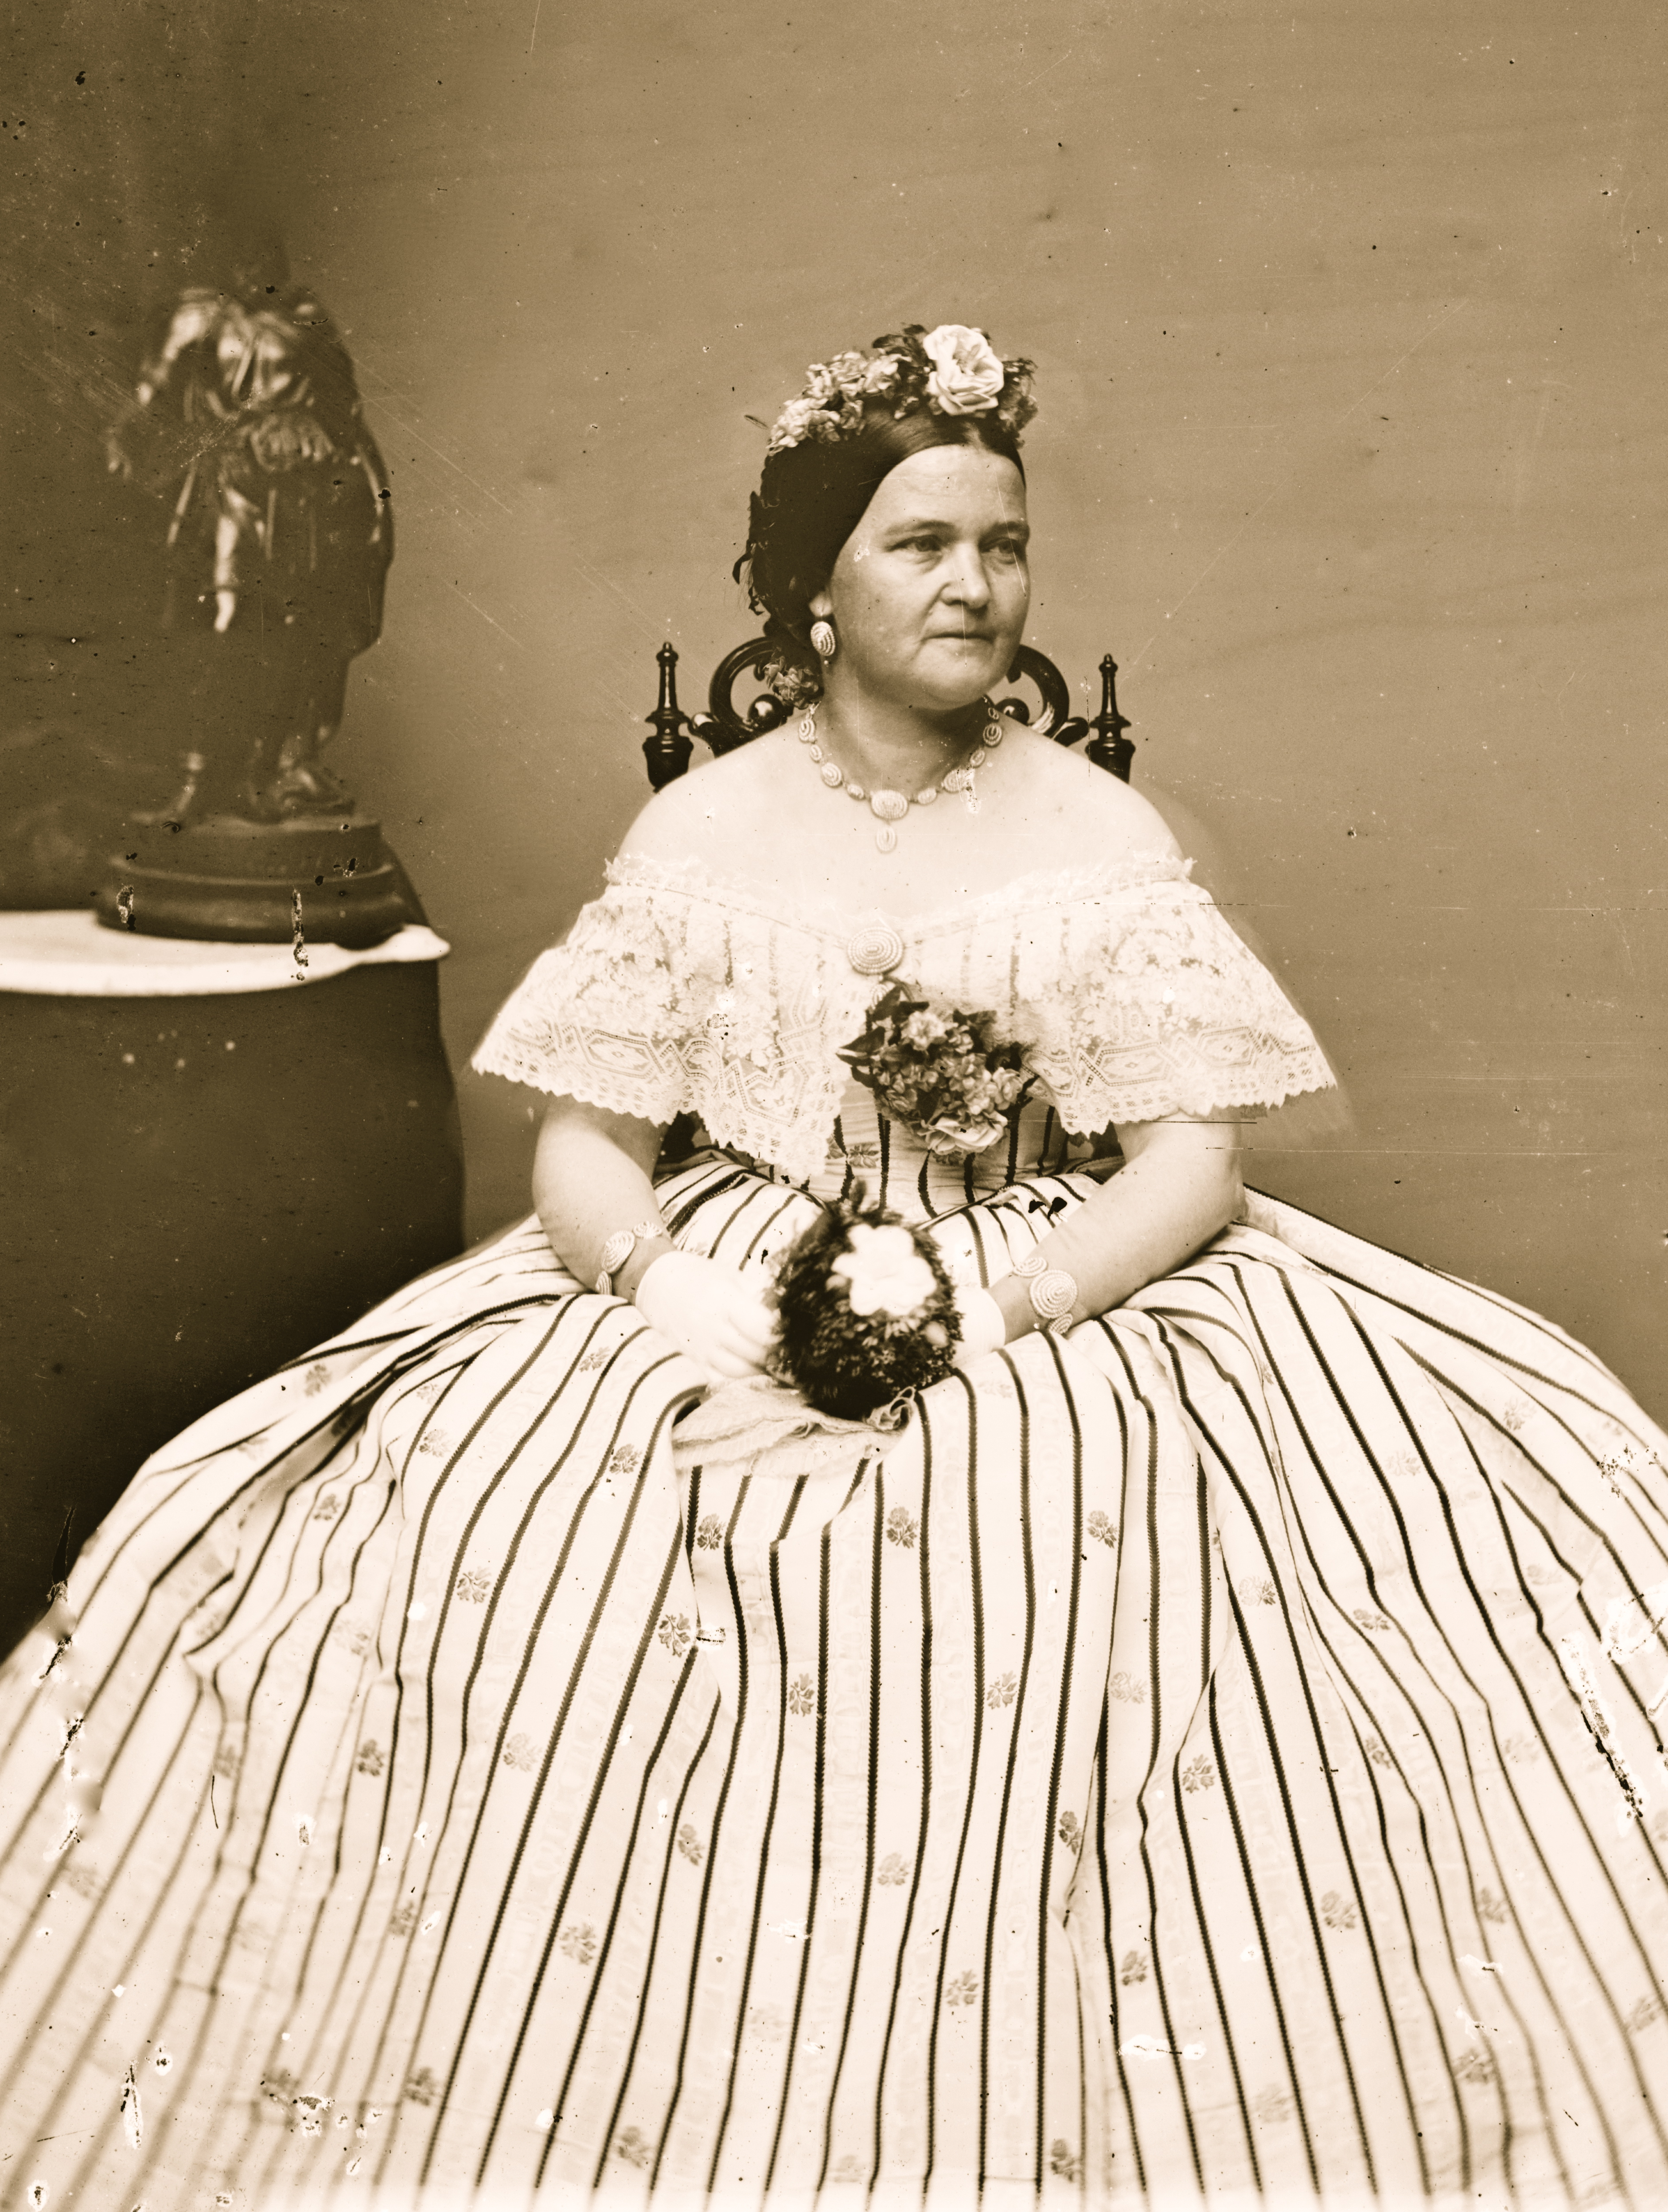 Mrs. Mary Todd Lincoln, wife of Abraham Lincoln, in 1863.